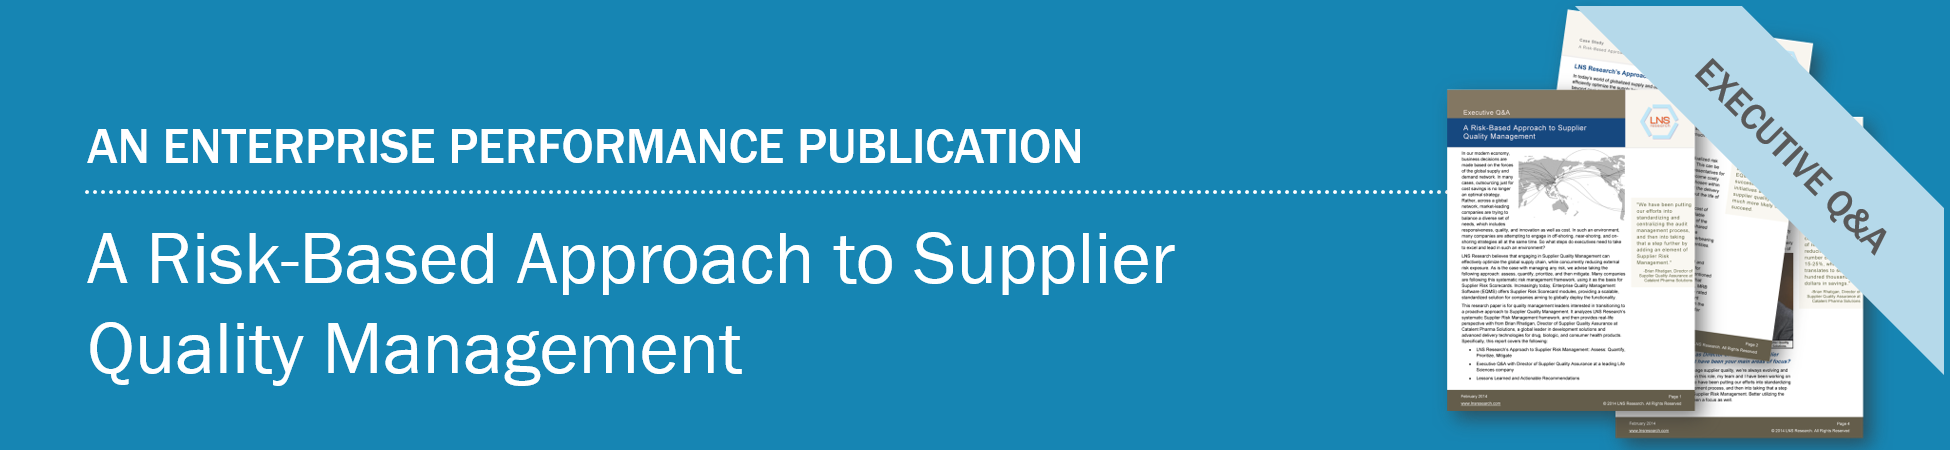 Research Spotlight: A Risk-Based Approach to Supplier Quality Management